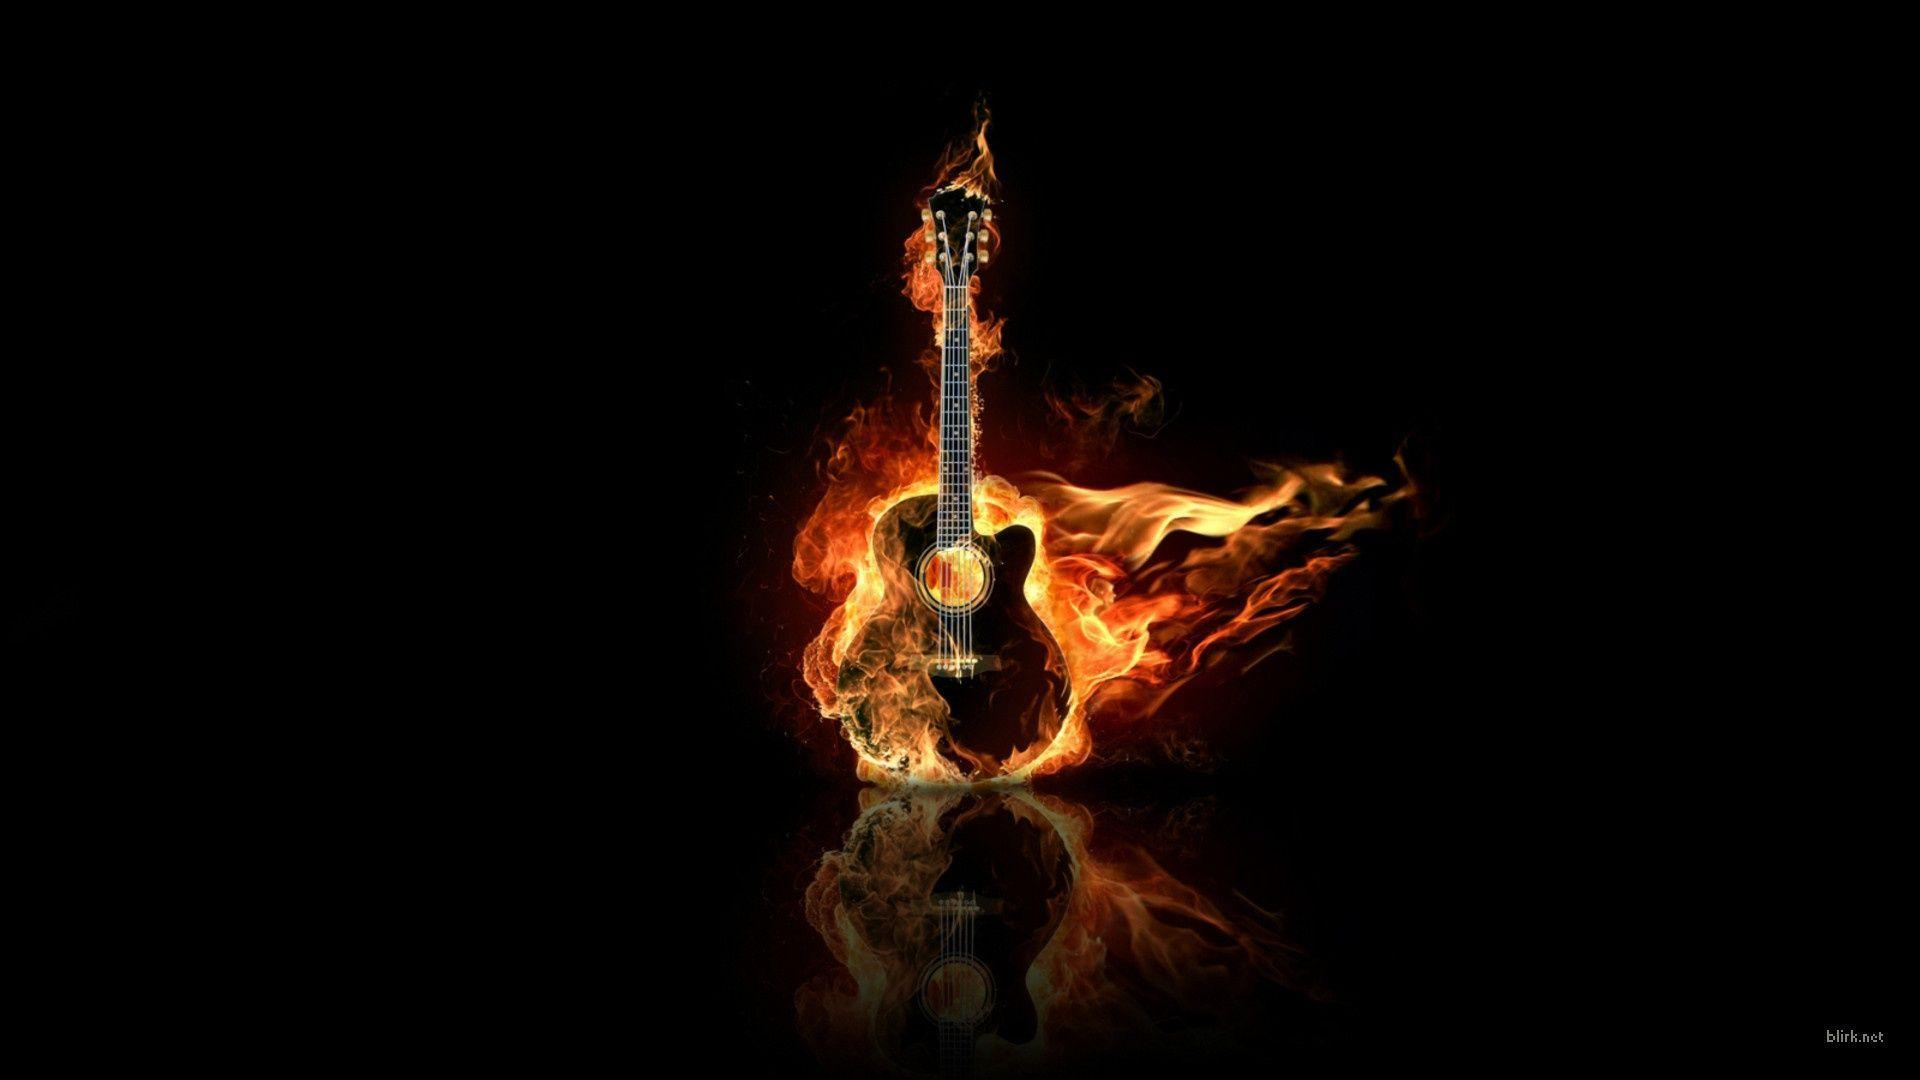 Wallpapers For > Guitar Wallpapers Hd